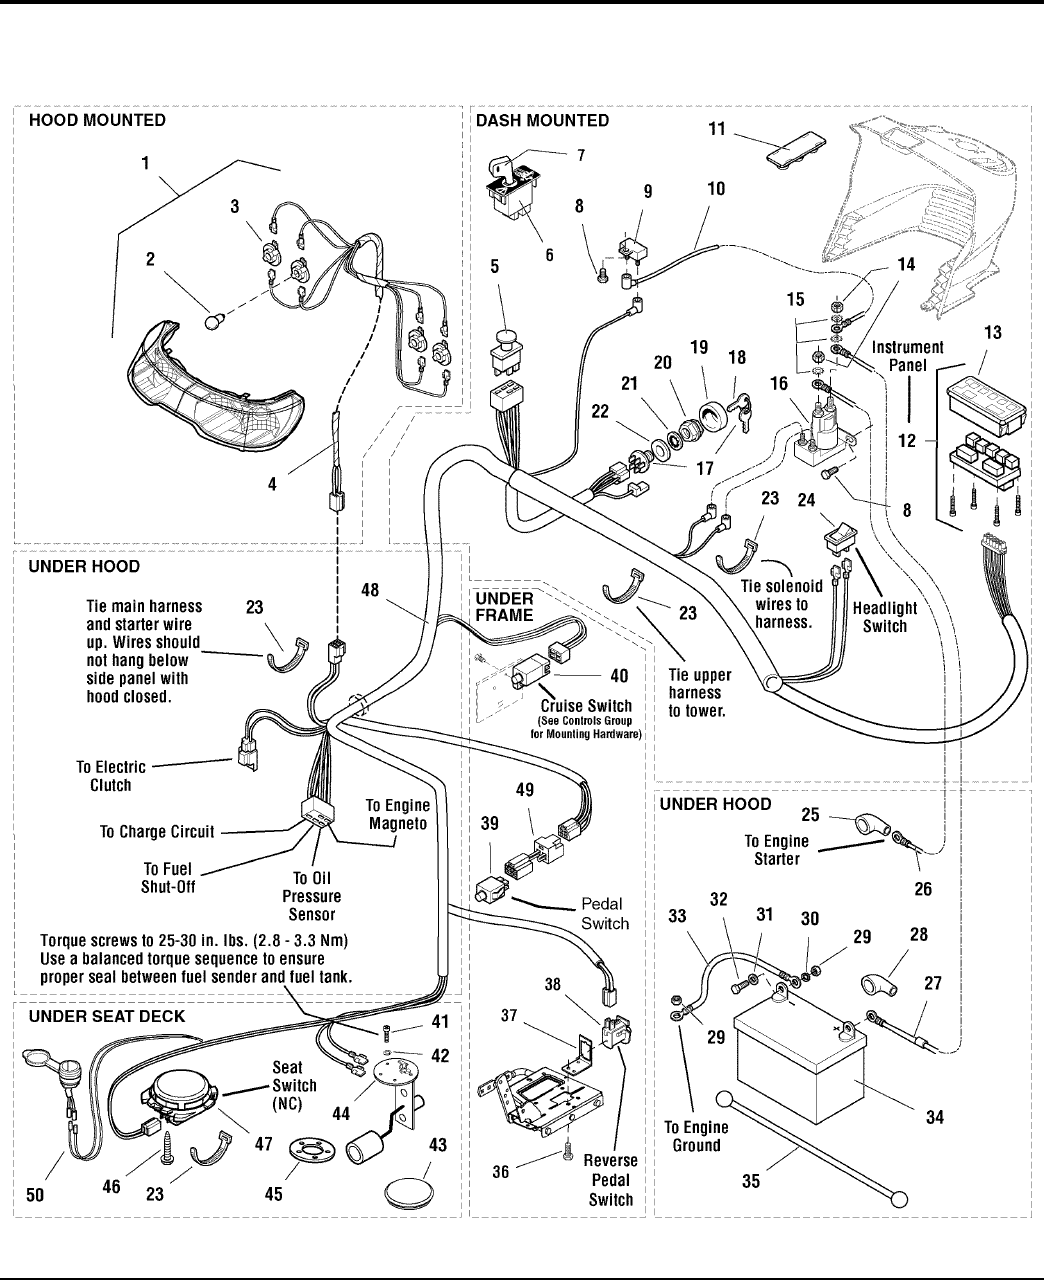 Simplicity Conquest 2700 Parts Manual / 1700 Series Garden